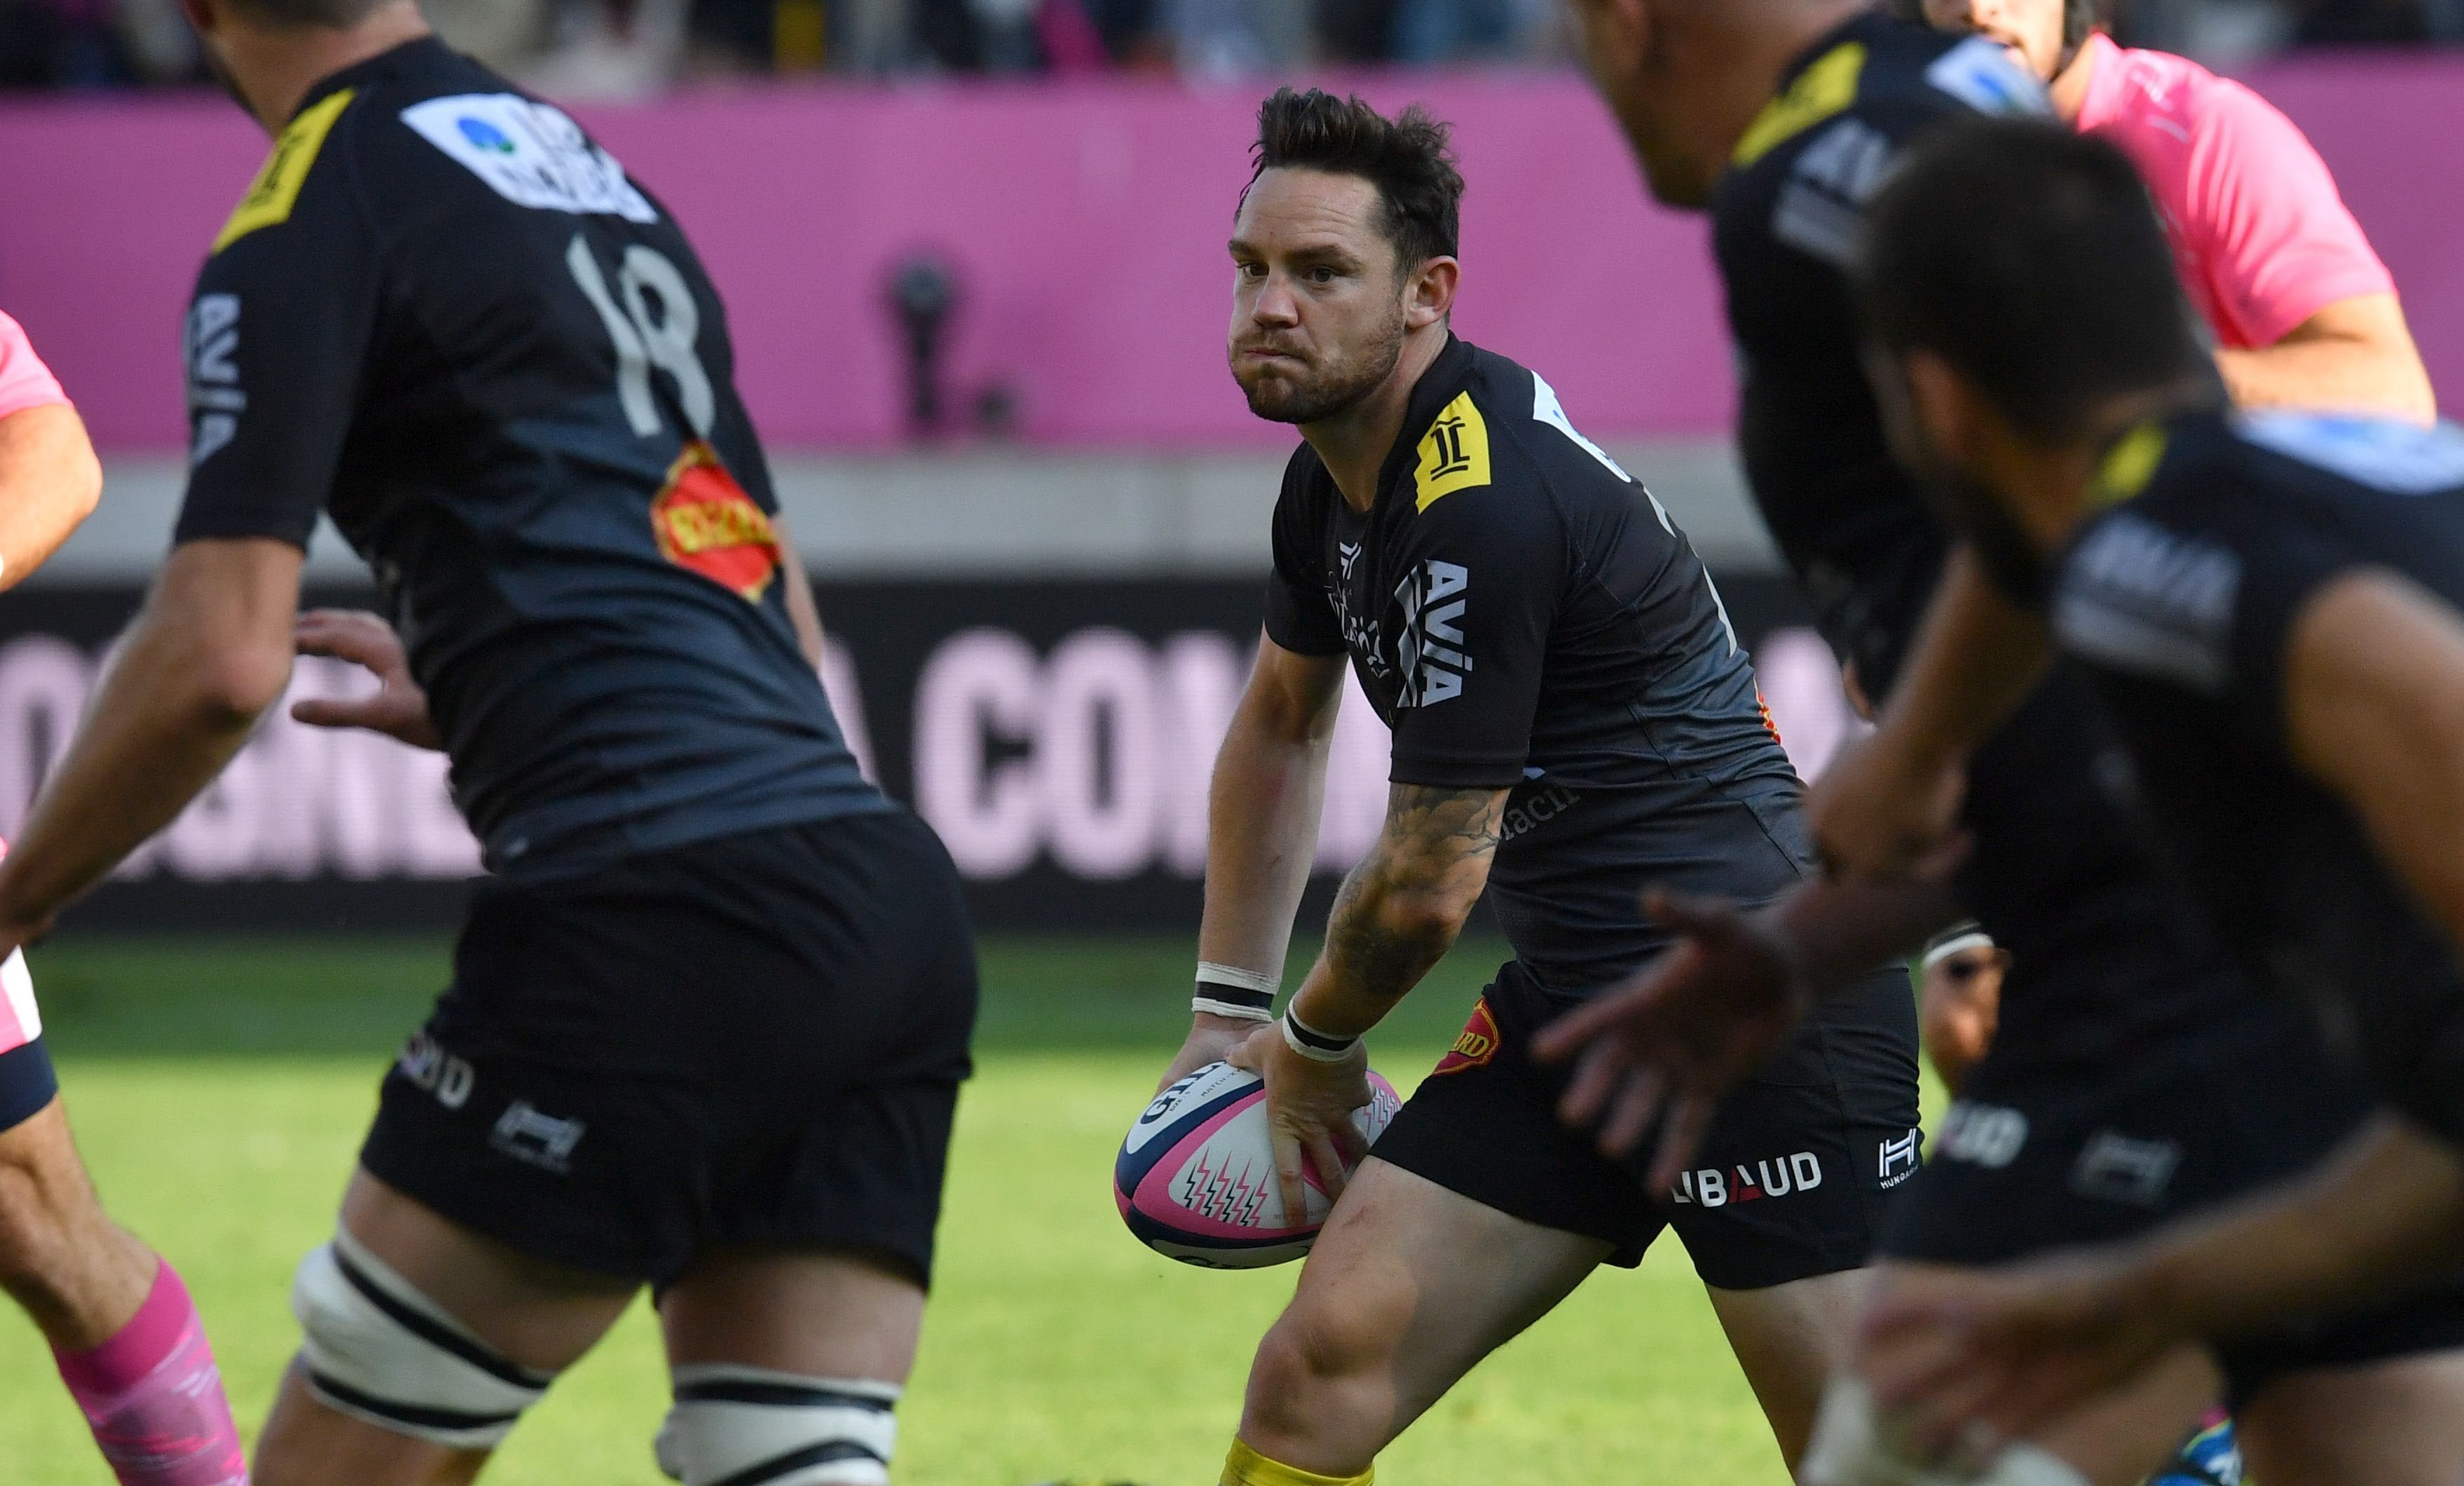 Rugby - Top 14 - Top 14 : La 4e journée en direct